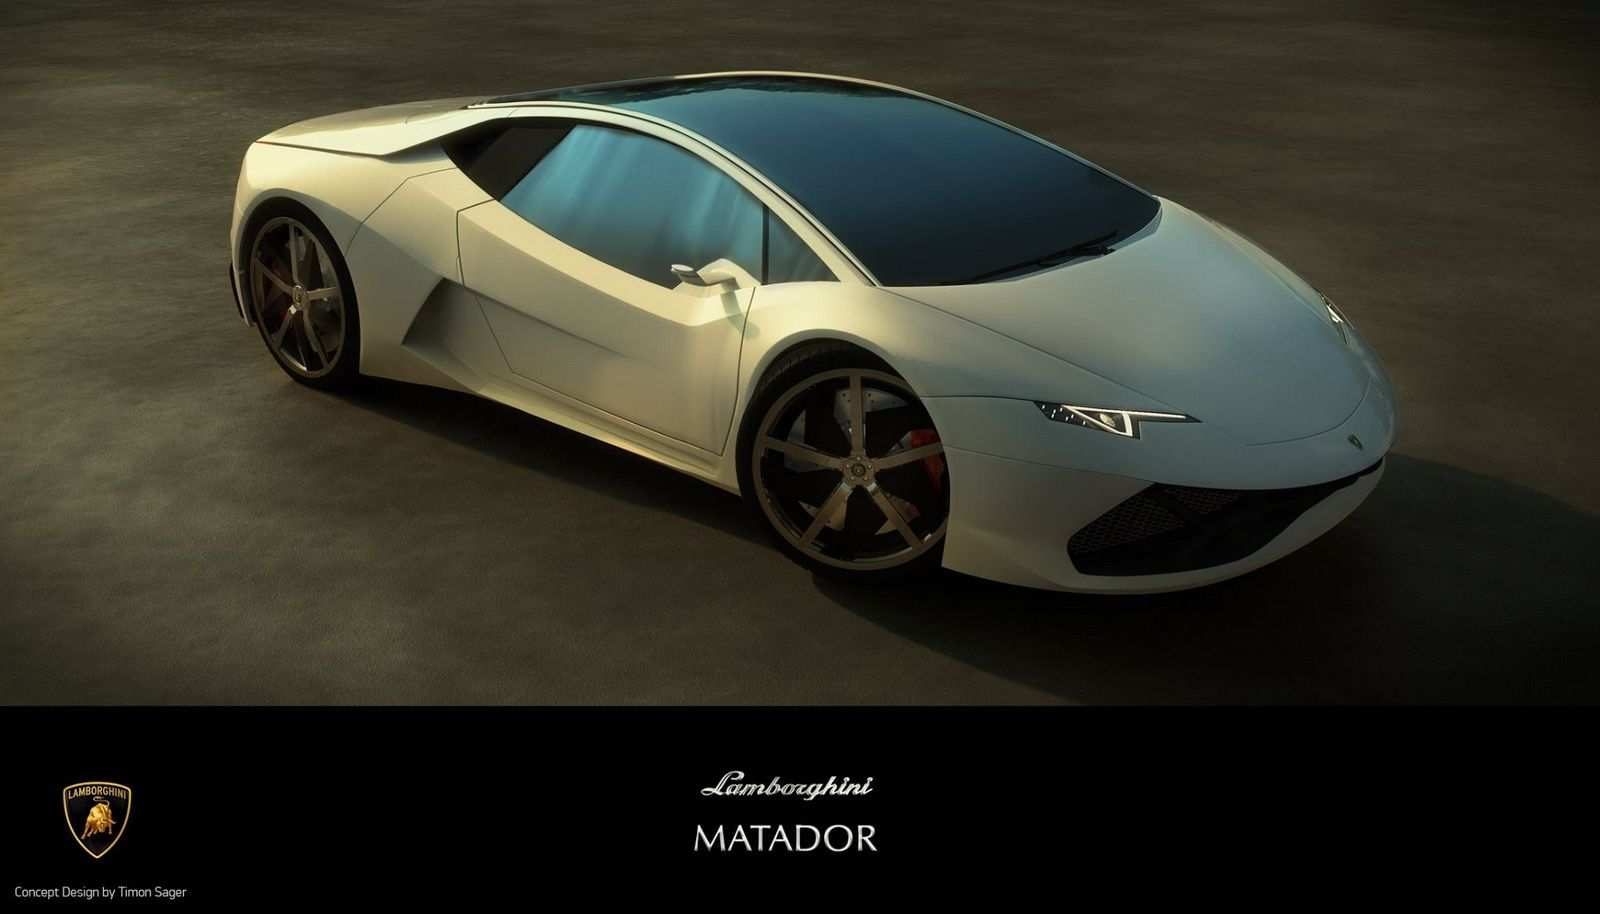 91 Great 2020 Lamborghini Aventador Price Images by 2020 Lamborghini Aventador Price